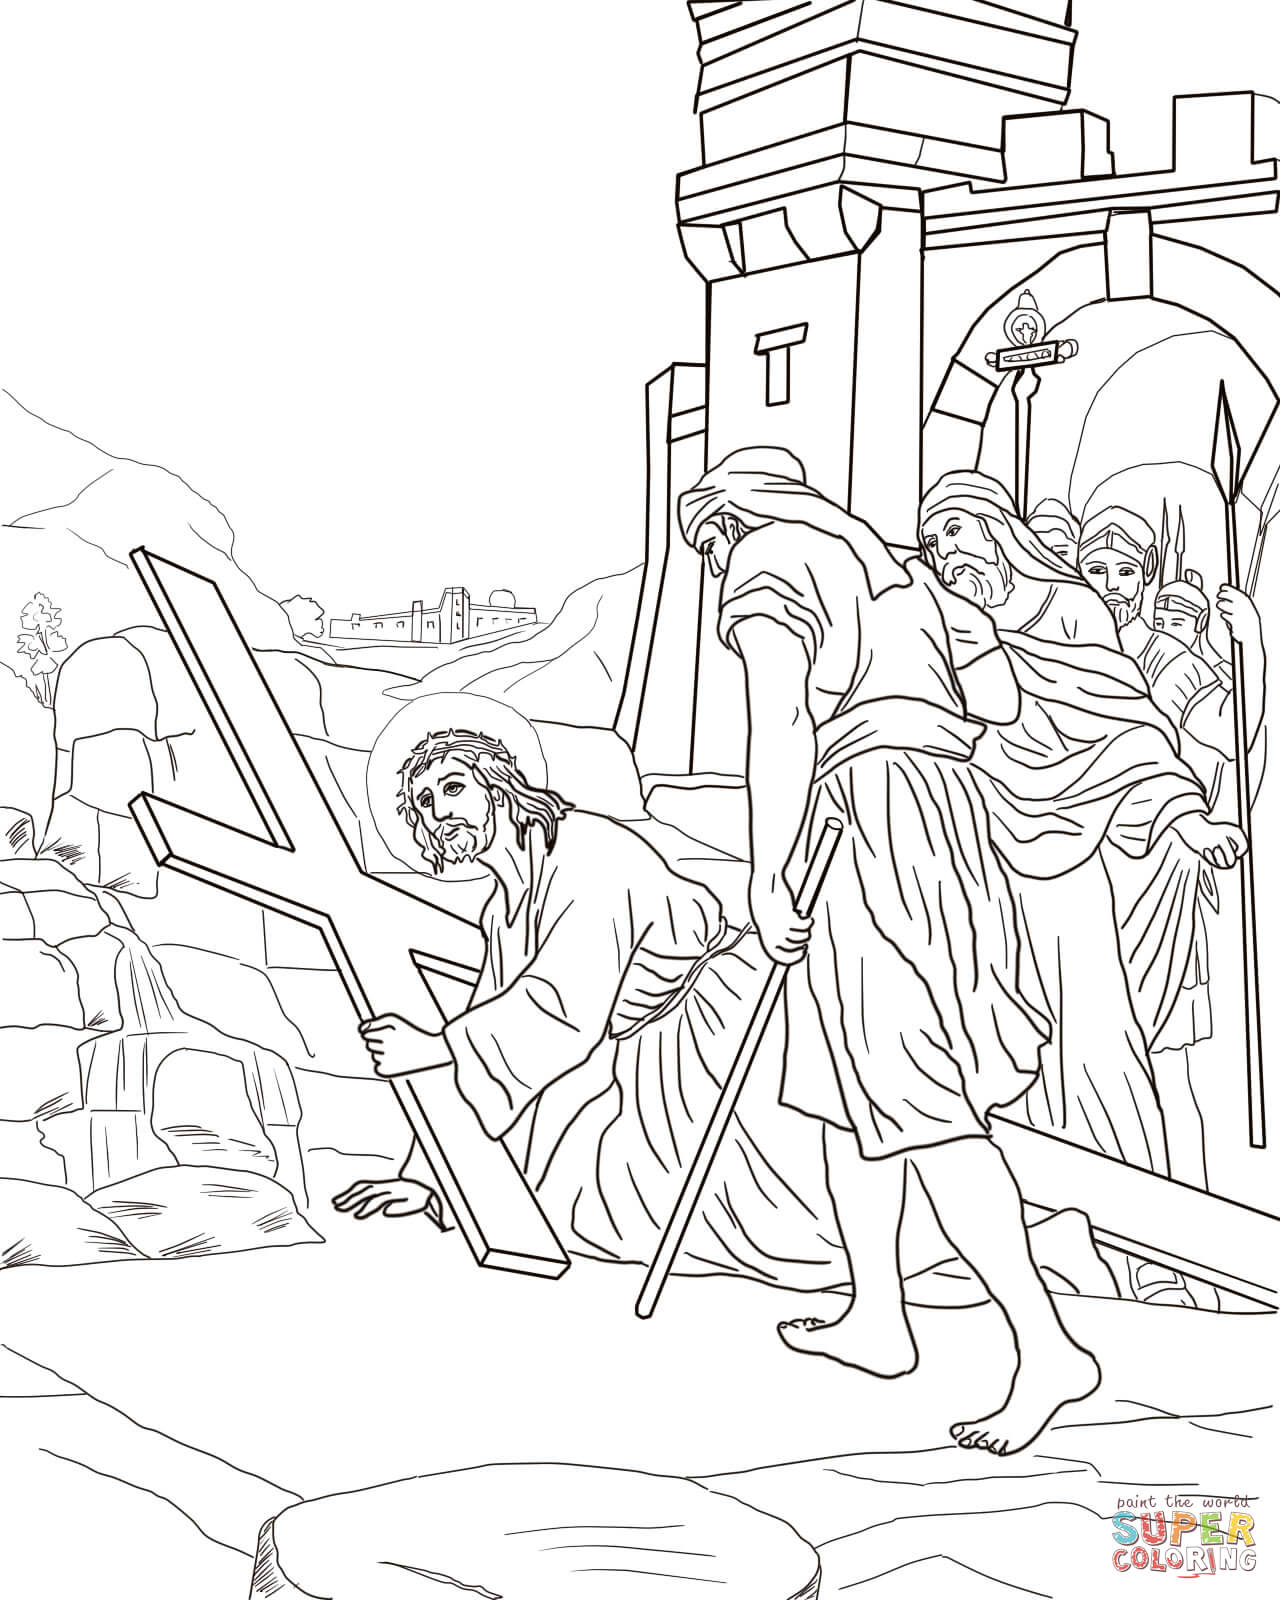 Stations Of The Cross Coloring Page - Coloring Home